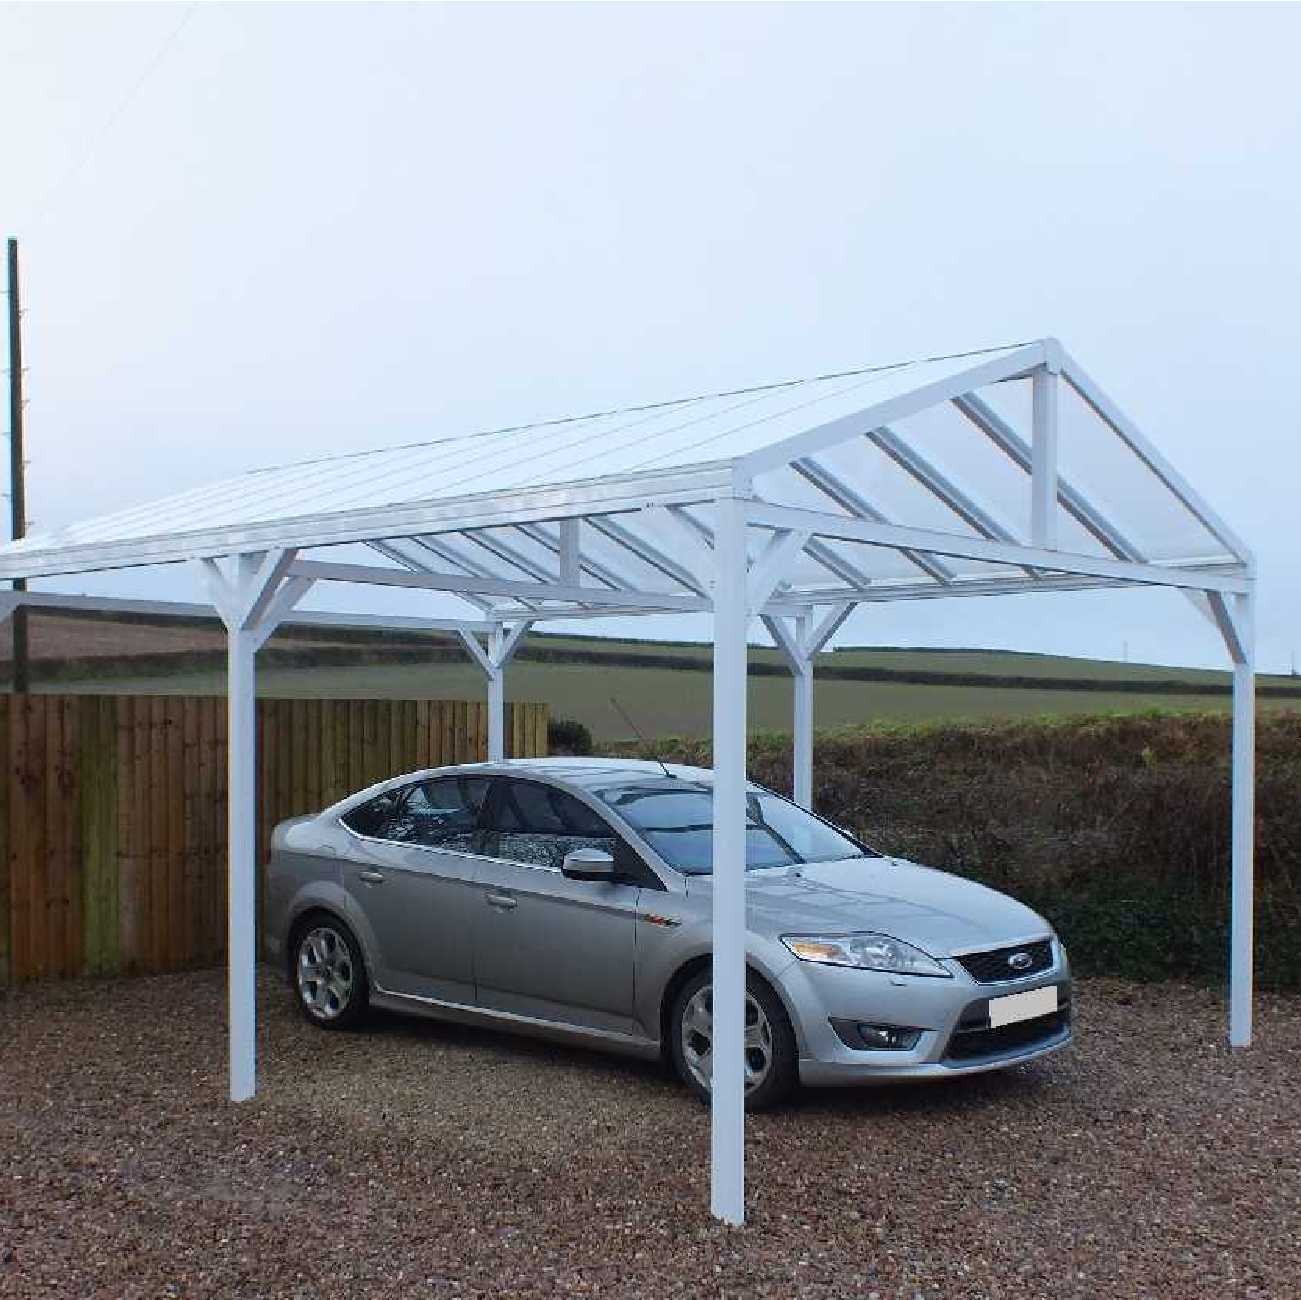 Affordable Omega Smart Free-Standing, Gable-Roof (type 1) Canopy with 16mm Polycarbonate Glazing - 7.4m (W) x 4.0m (P), (8) Supporting Posts